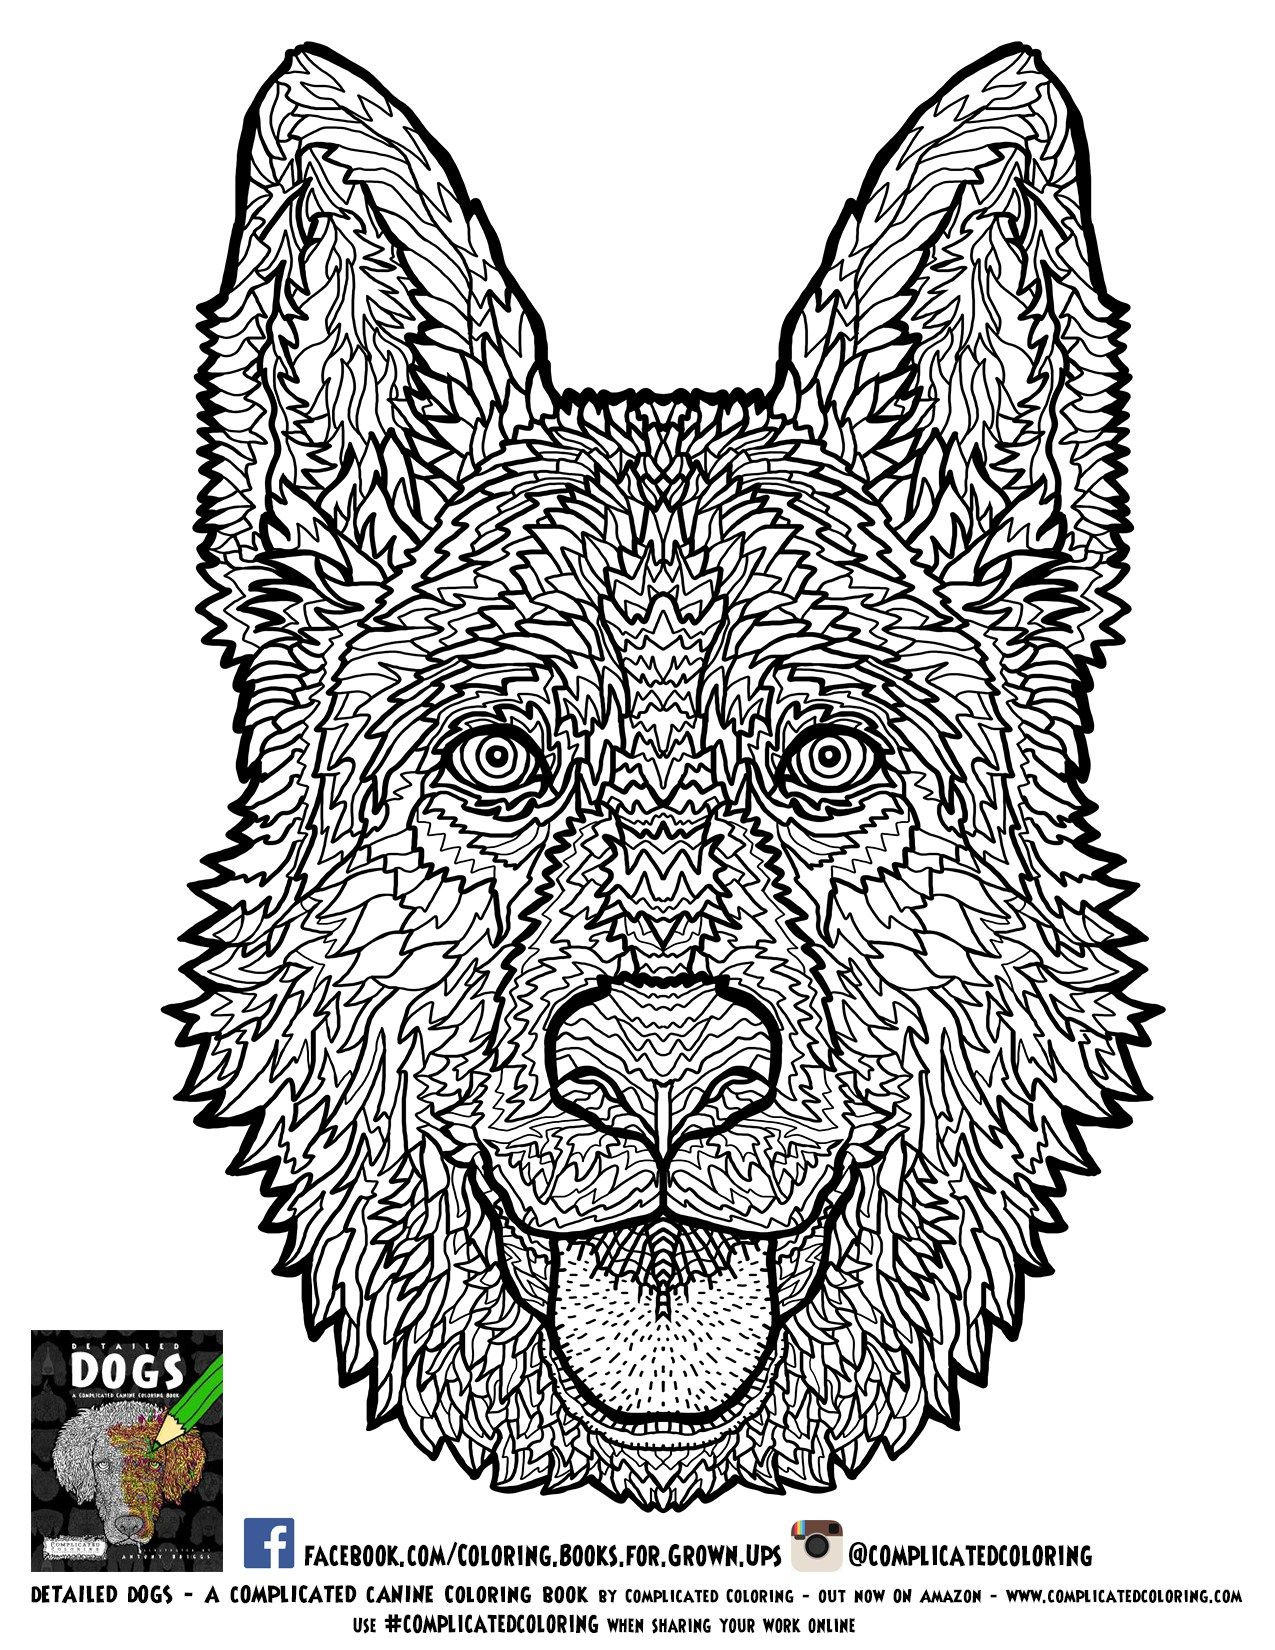 Complicated Coloring Intricate And Awesome Coloring Books Dog Coloring Book Dog Coloring Page Animal Coloring Pages